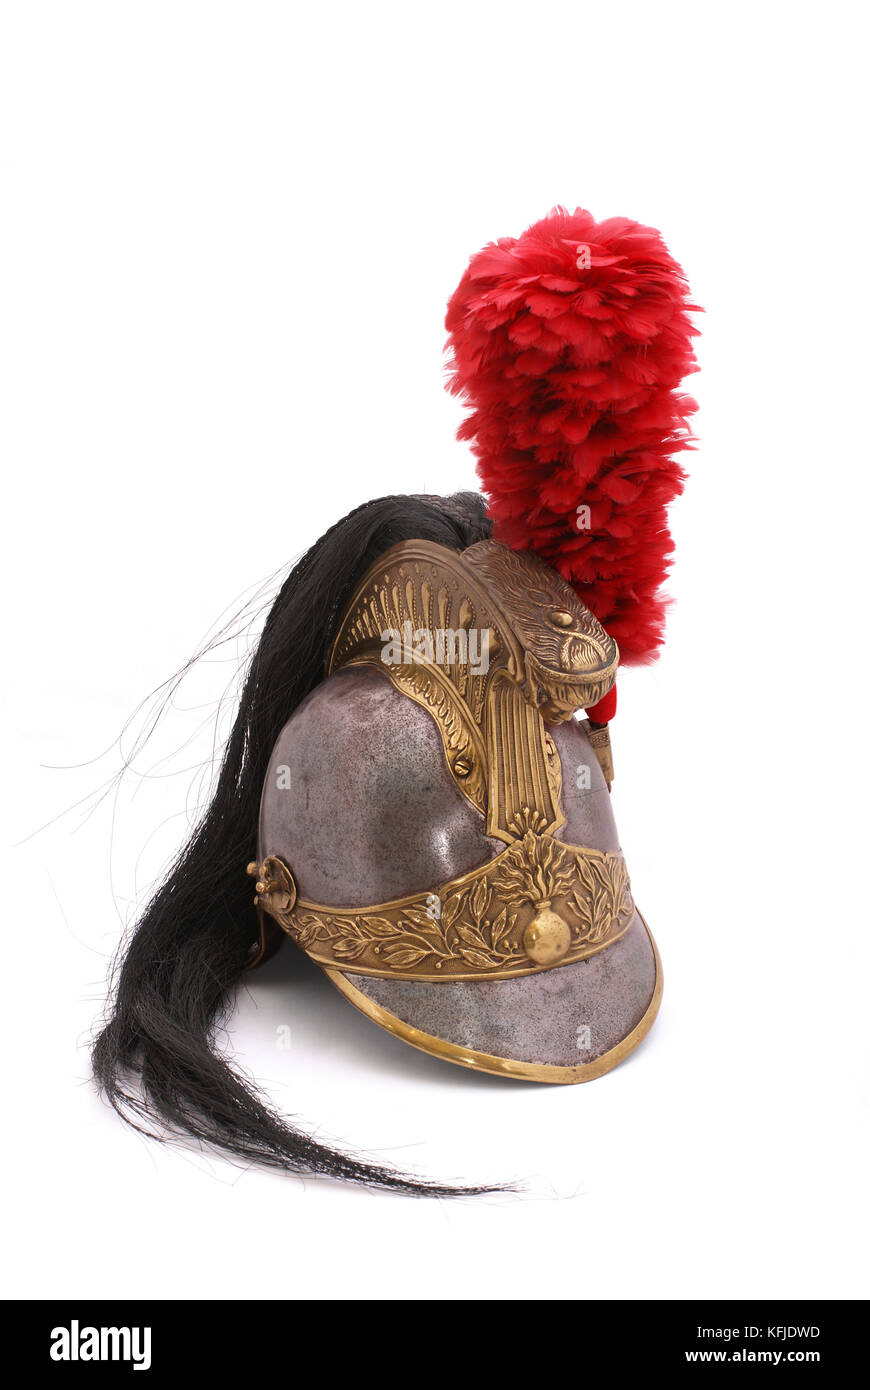 helmet of French cuirassier (jokingly called - 'big men on big horses'). France. 19 century. Period of napoleonic - Stock Image